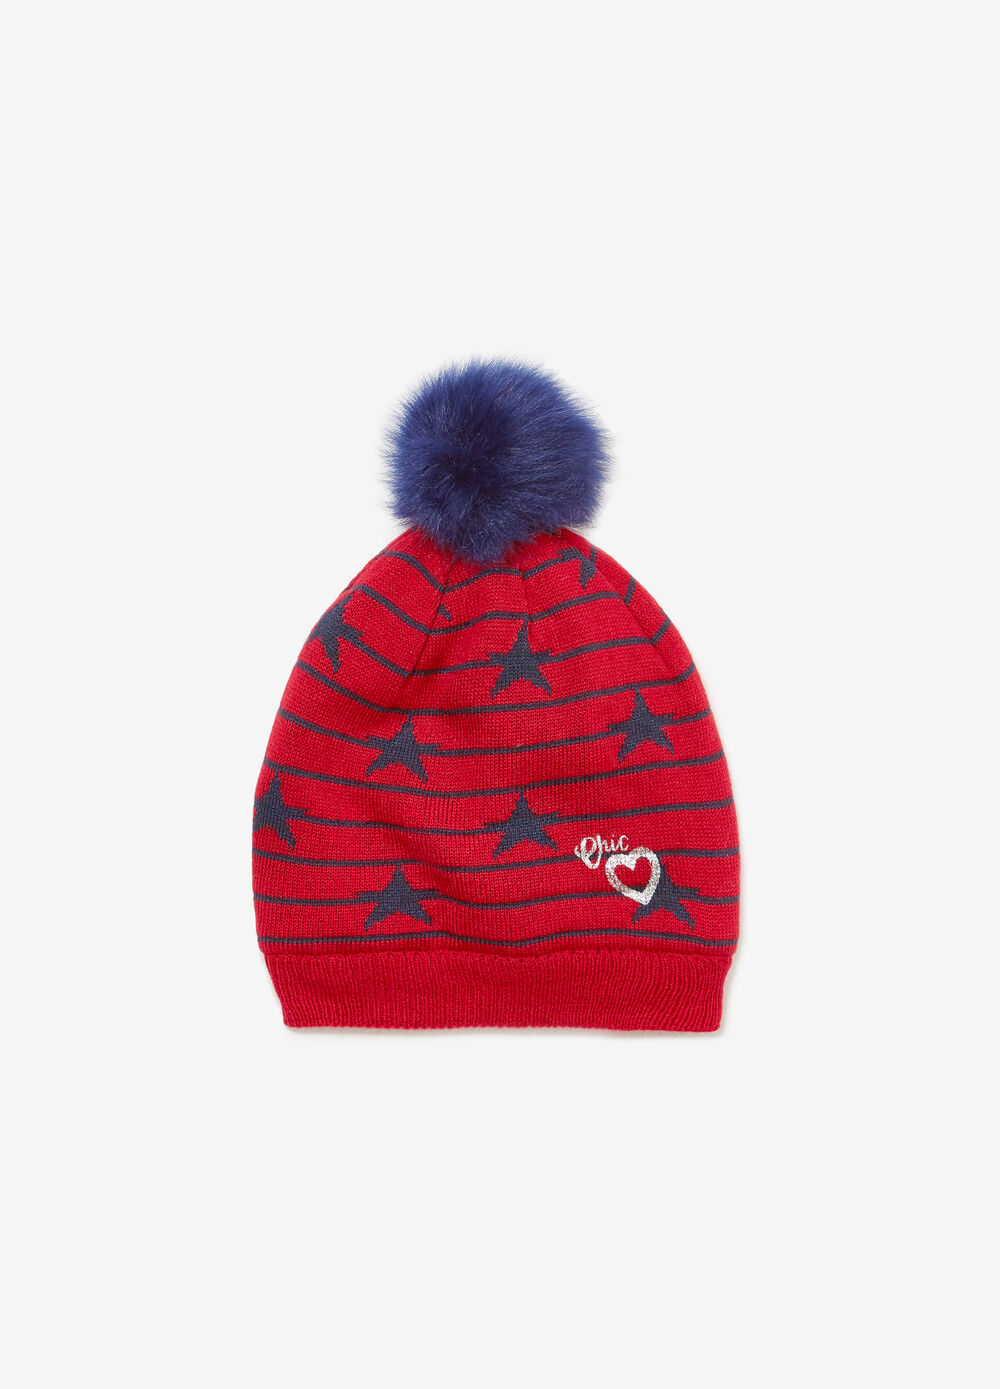 Knitted beanie cap with stripes and stars